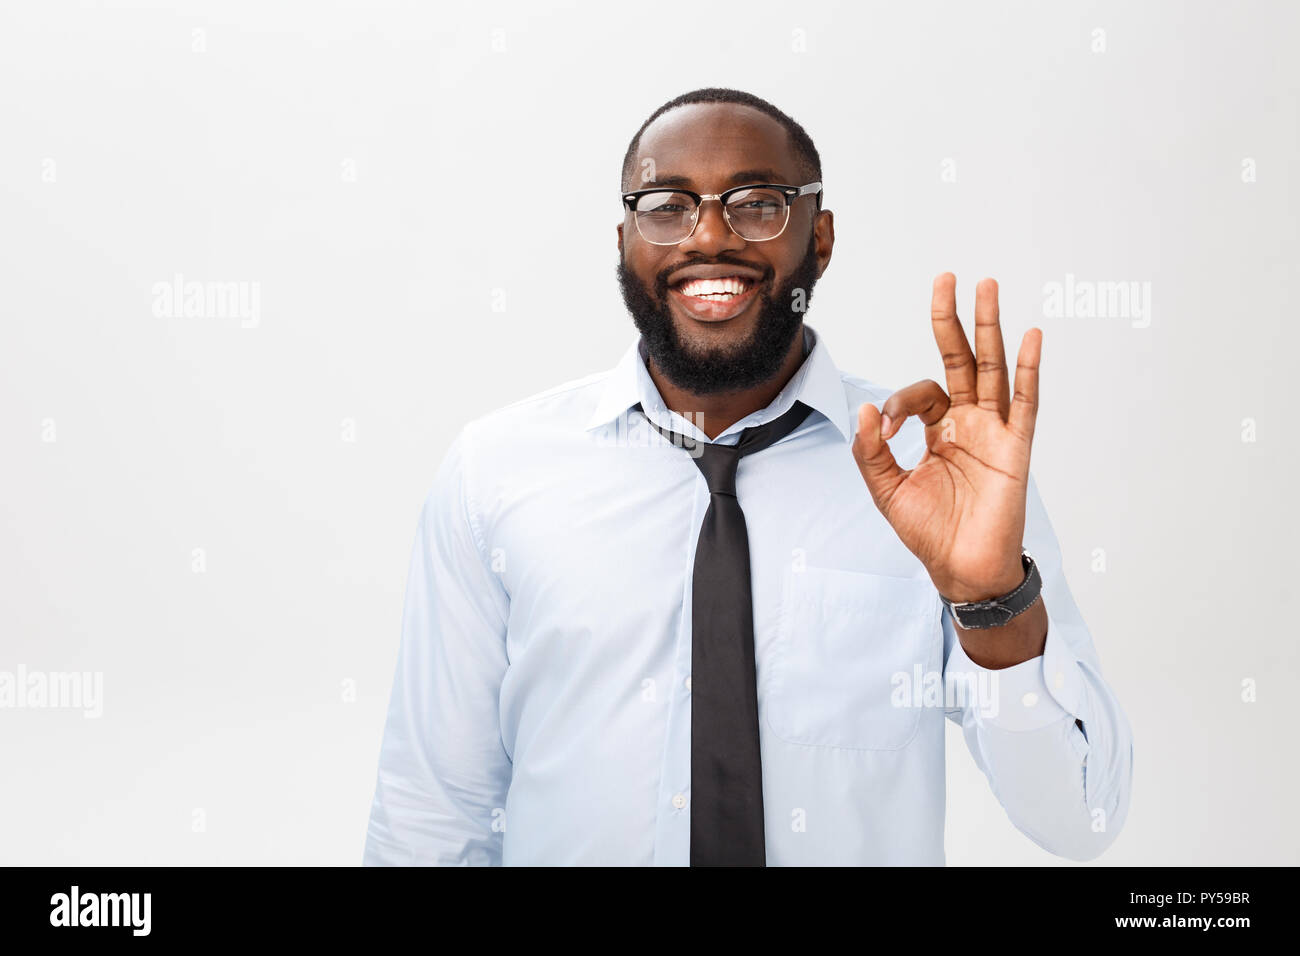 Portrait of african american business man smiling and showing okay sign. Body language concept Stock Photo